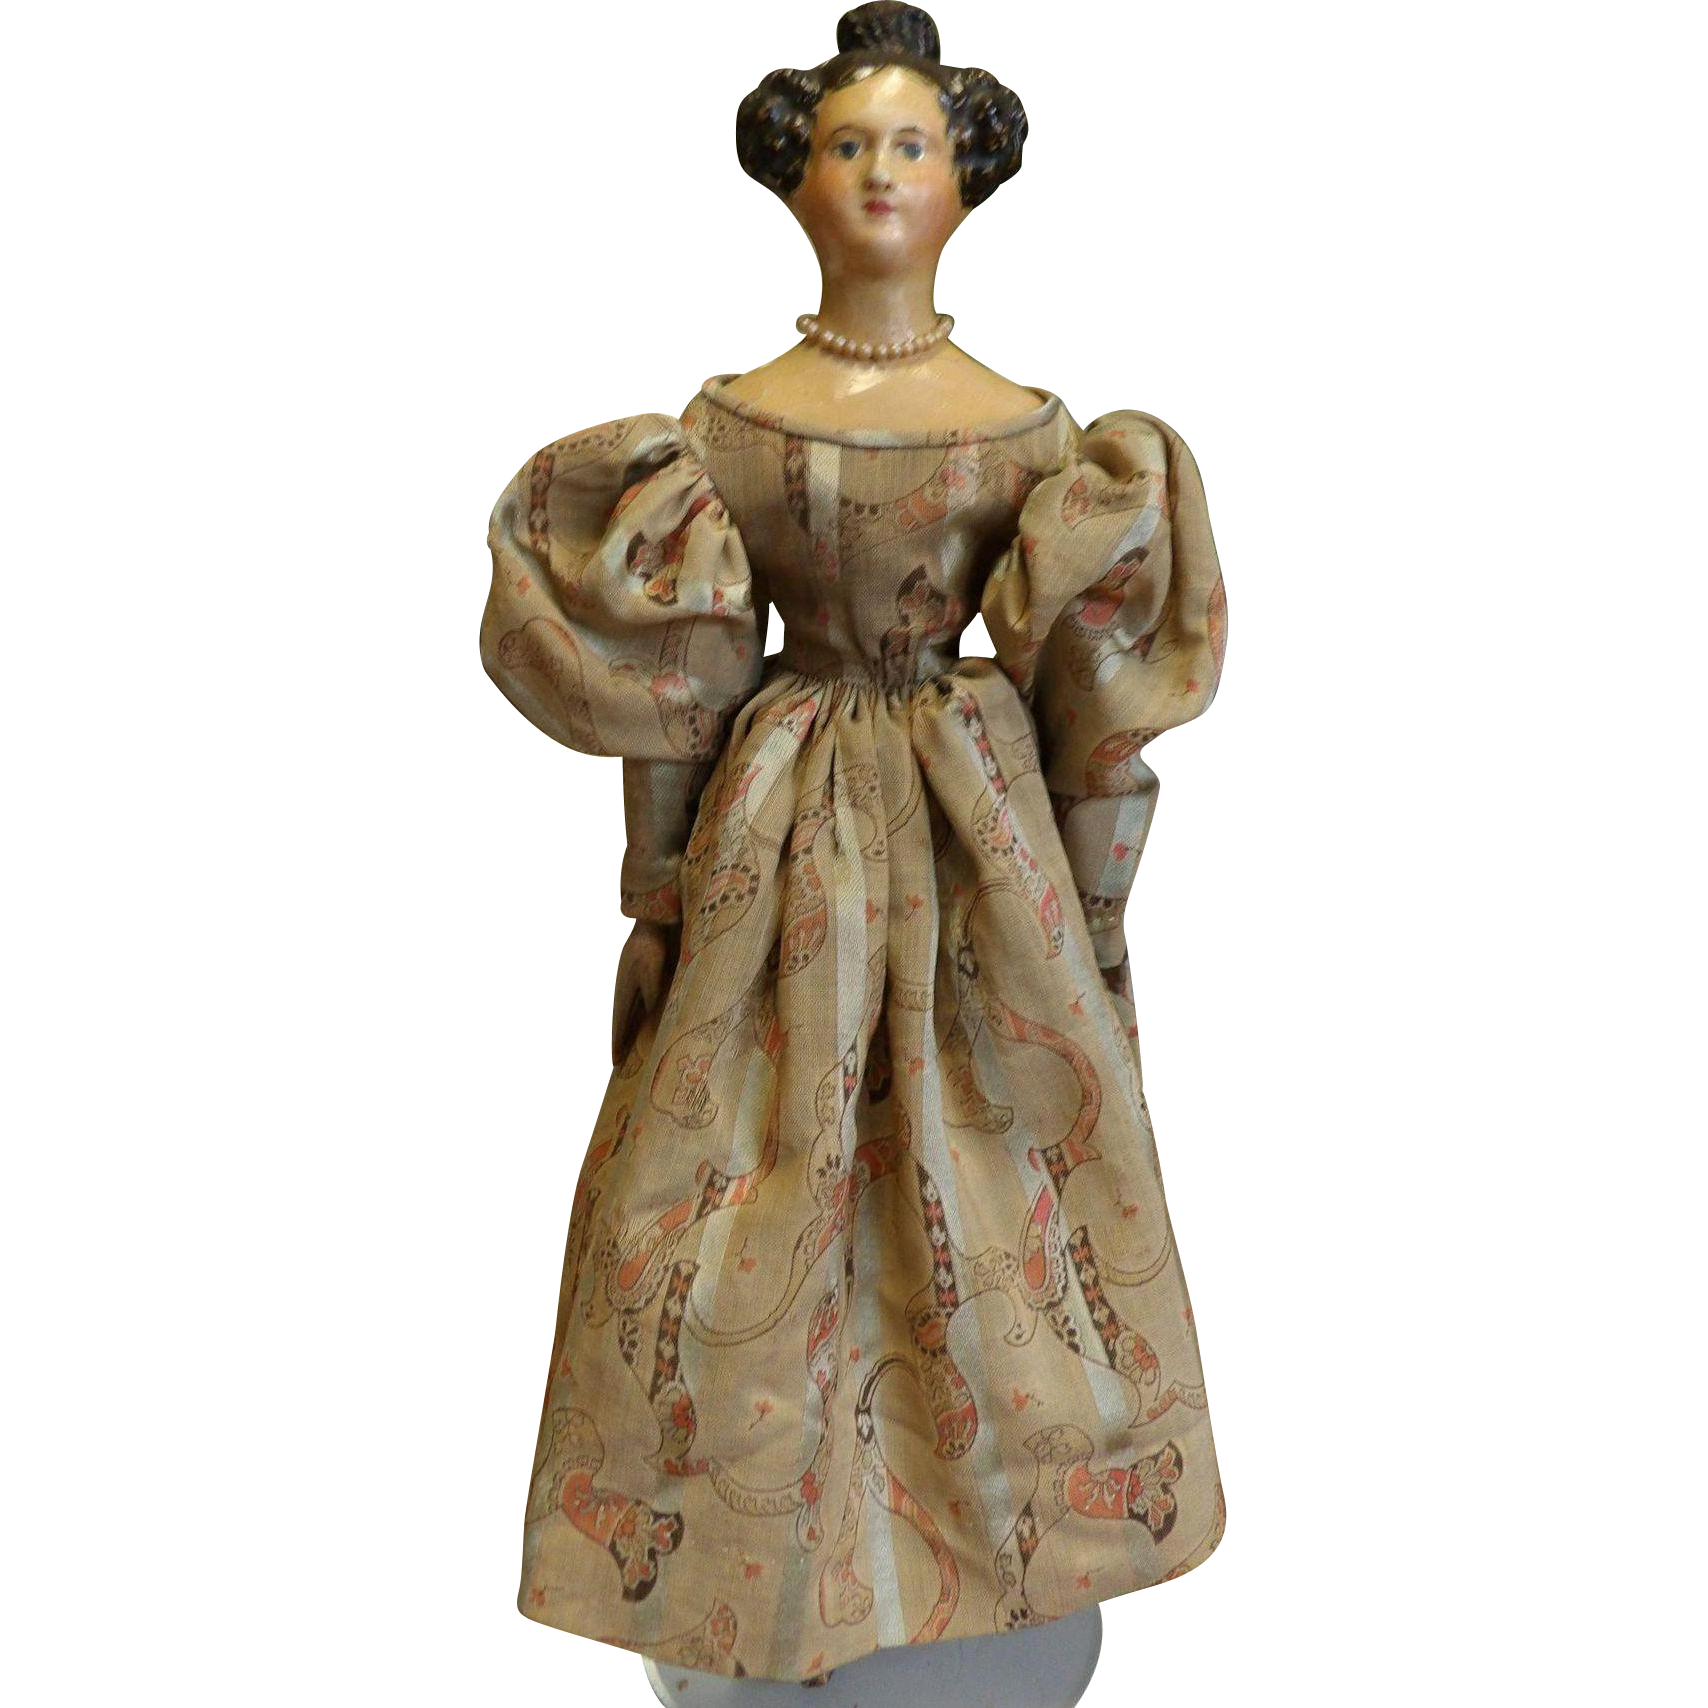 Antique 19thc Paper Mache Doll with Apollo Knot on Milliner's Model from classicdolls on Ruby Lane